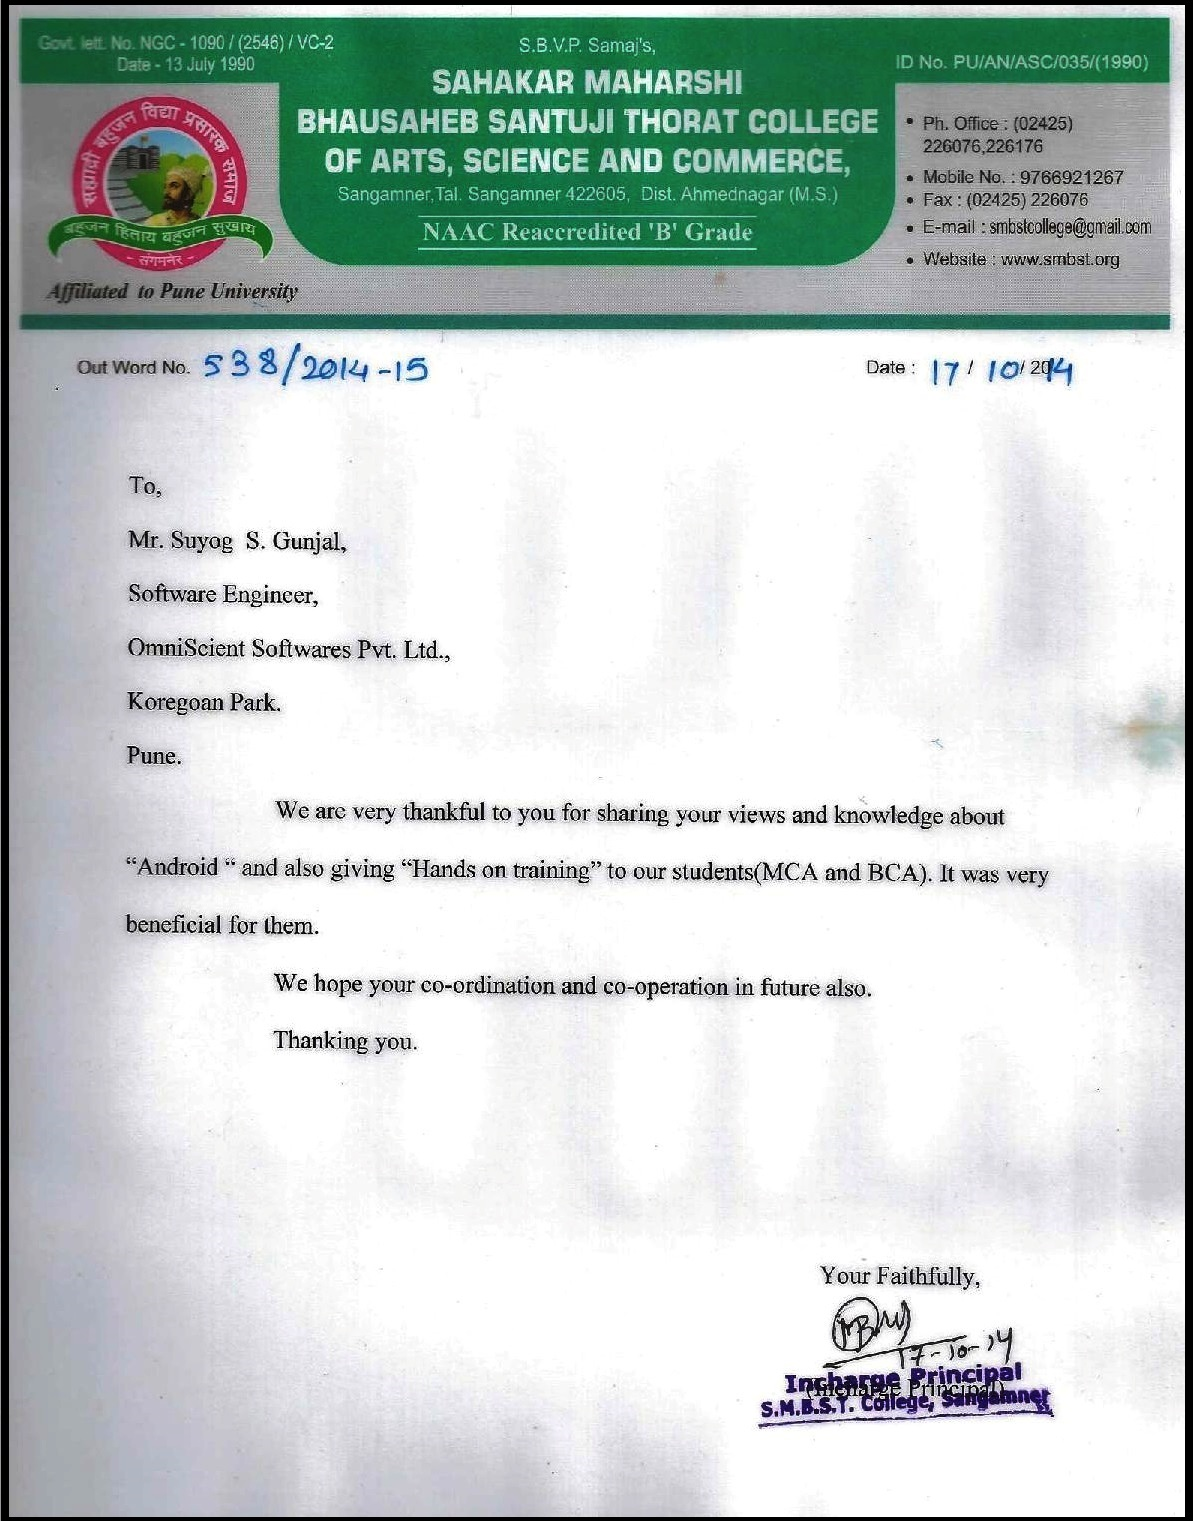 Psychic technologies suyog gunjal android seminar experience letter by sahyadri college 2014 yadclub Choice Image